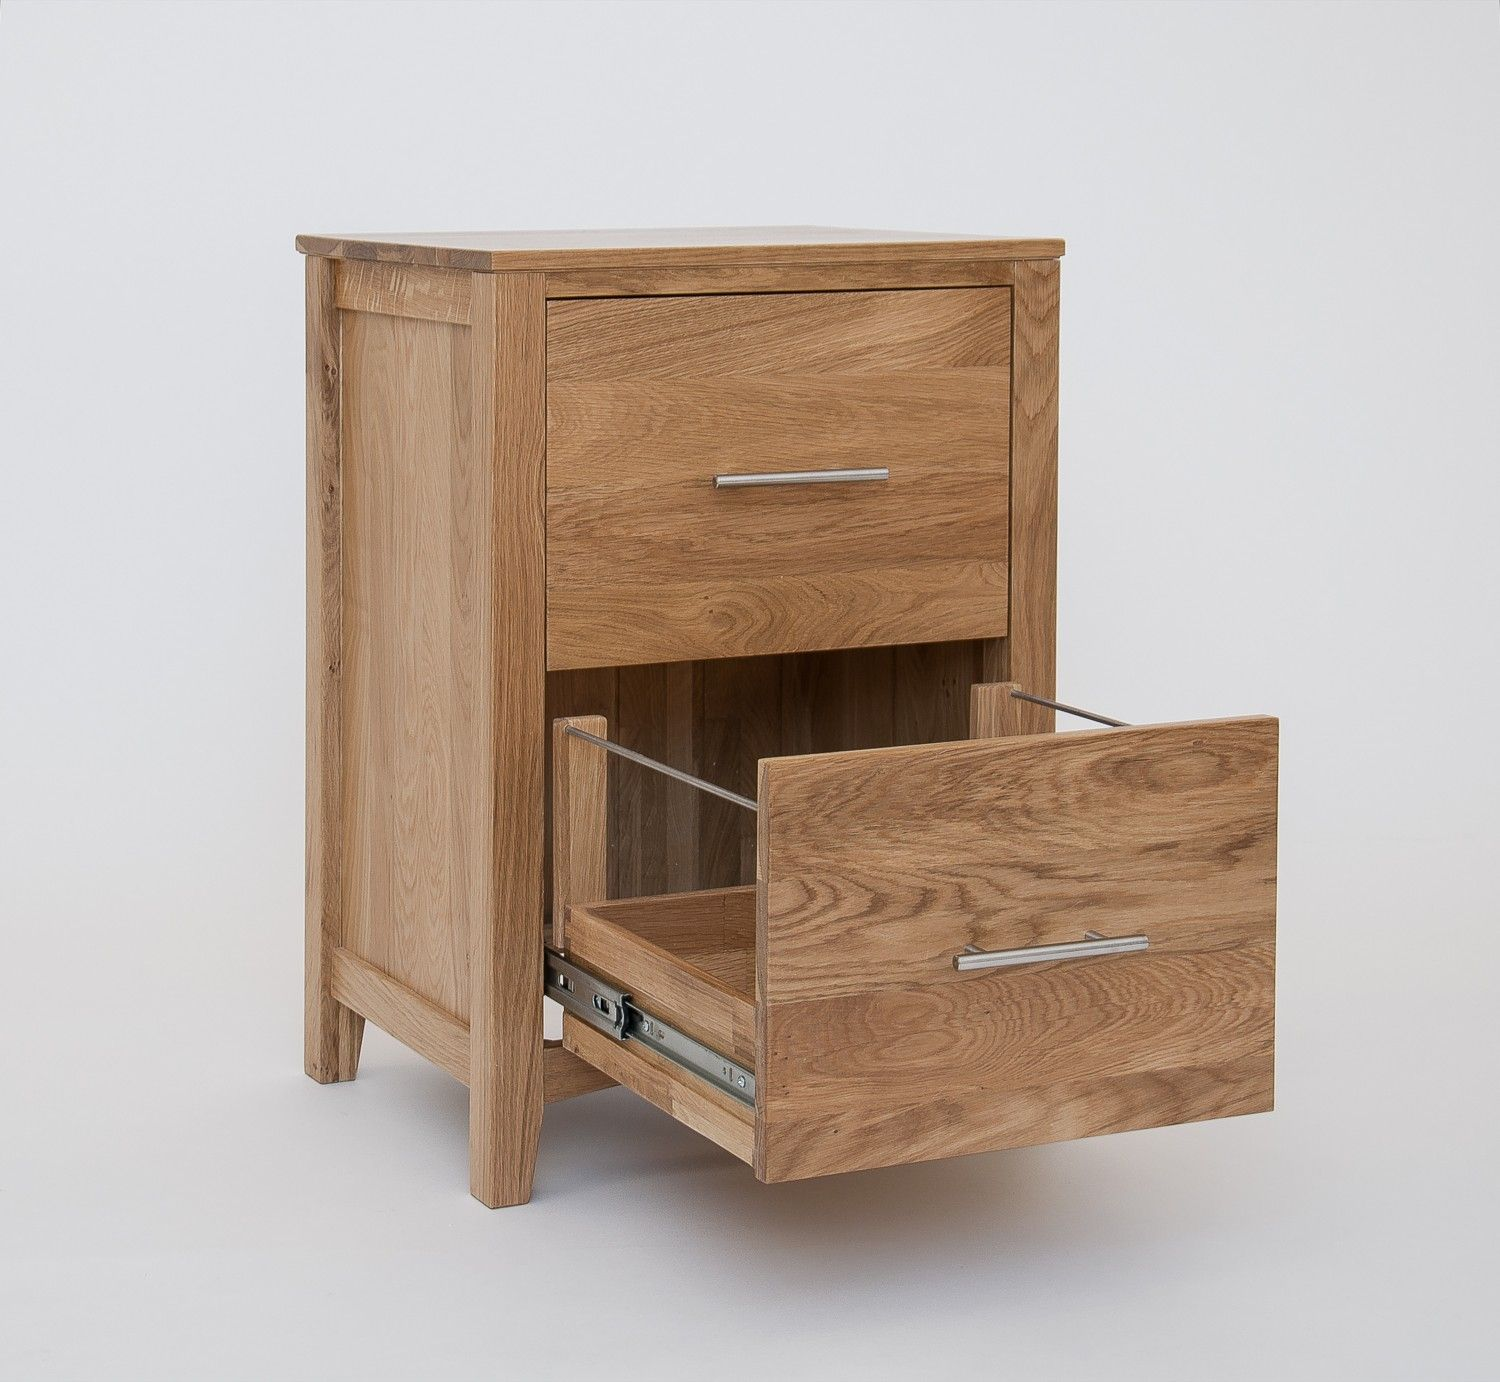 Hereford Oak Is An Extensive And Versatile Range Crafted From